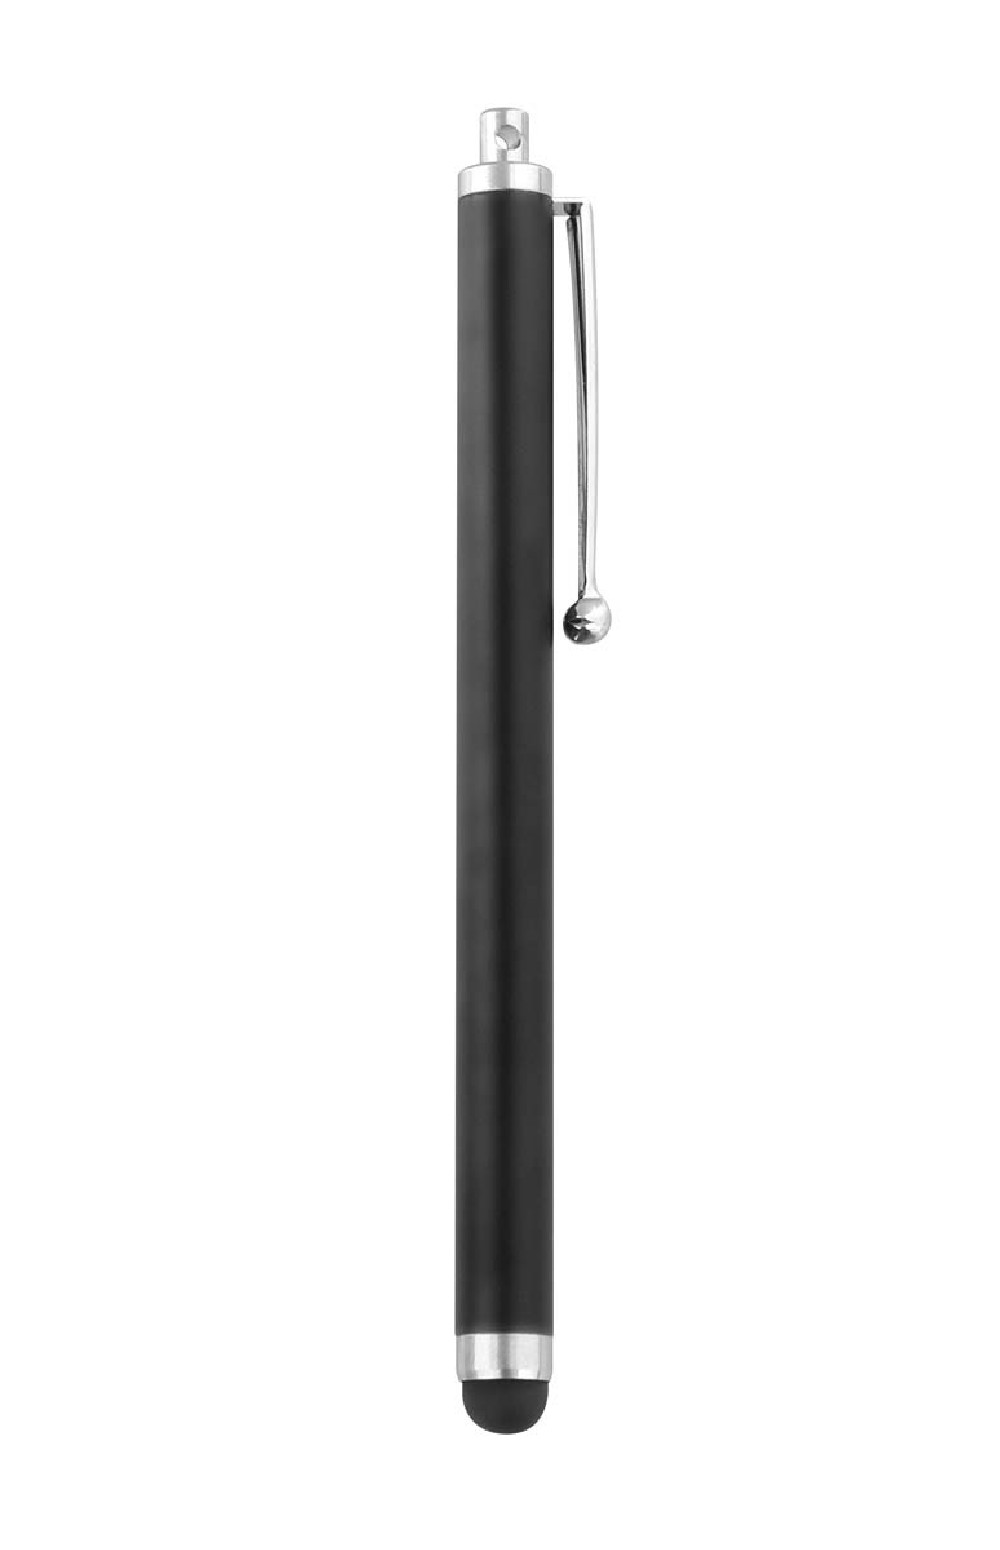 UNIVERSAL STYLUS FOR TABLET